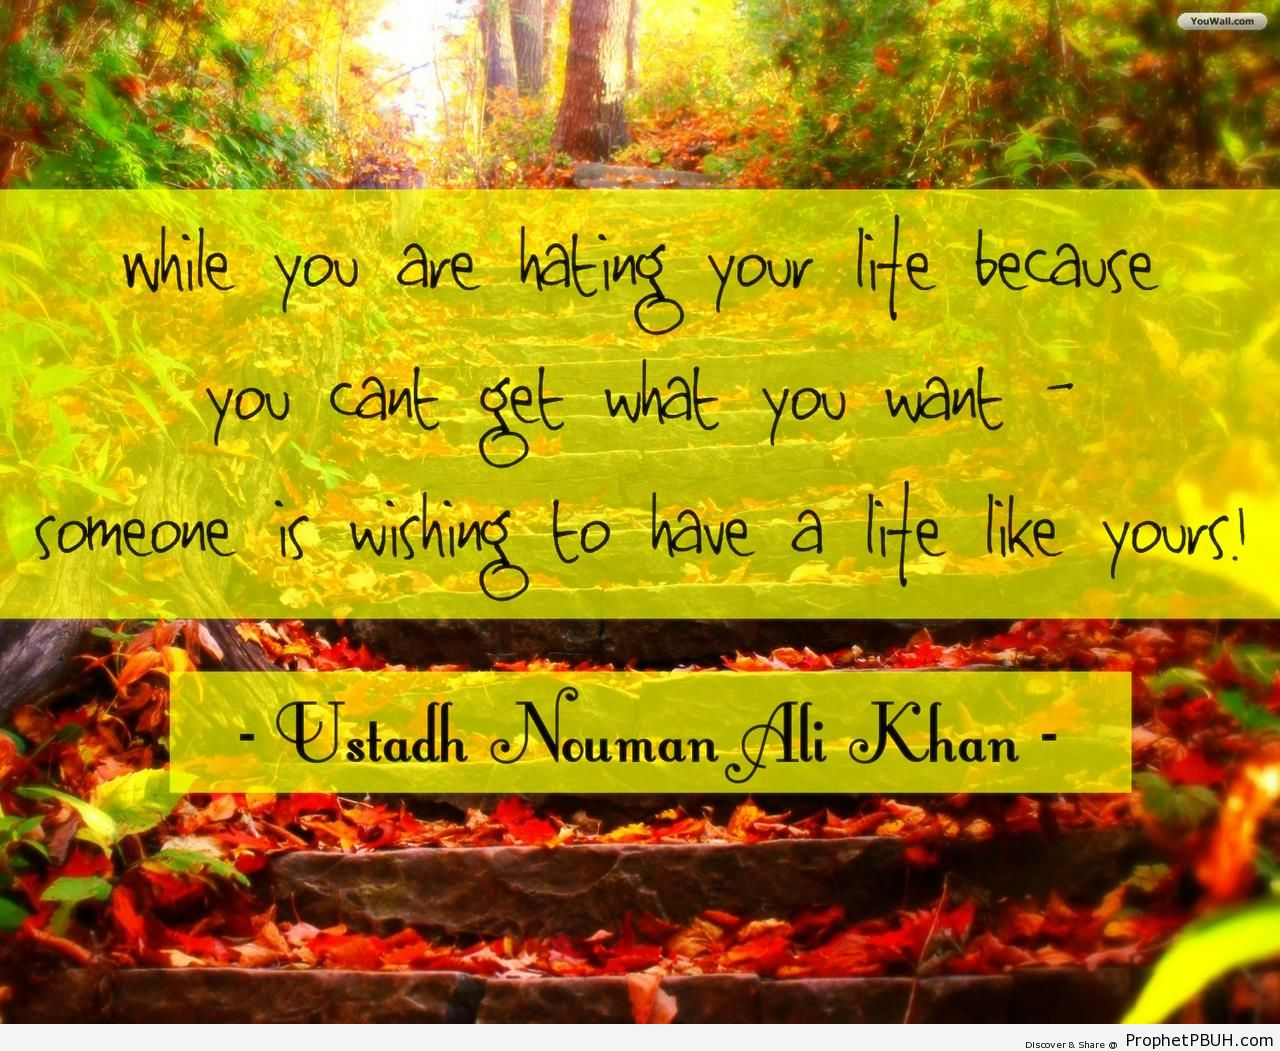 Nouman Ali Khan- While you are hating your life& - Islamic Quotes